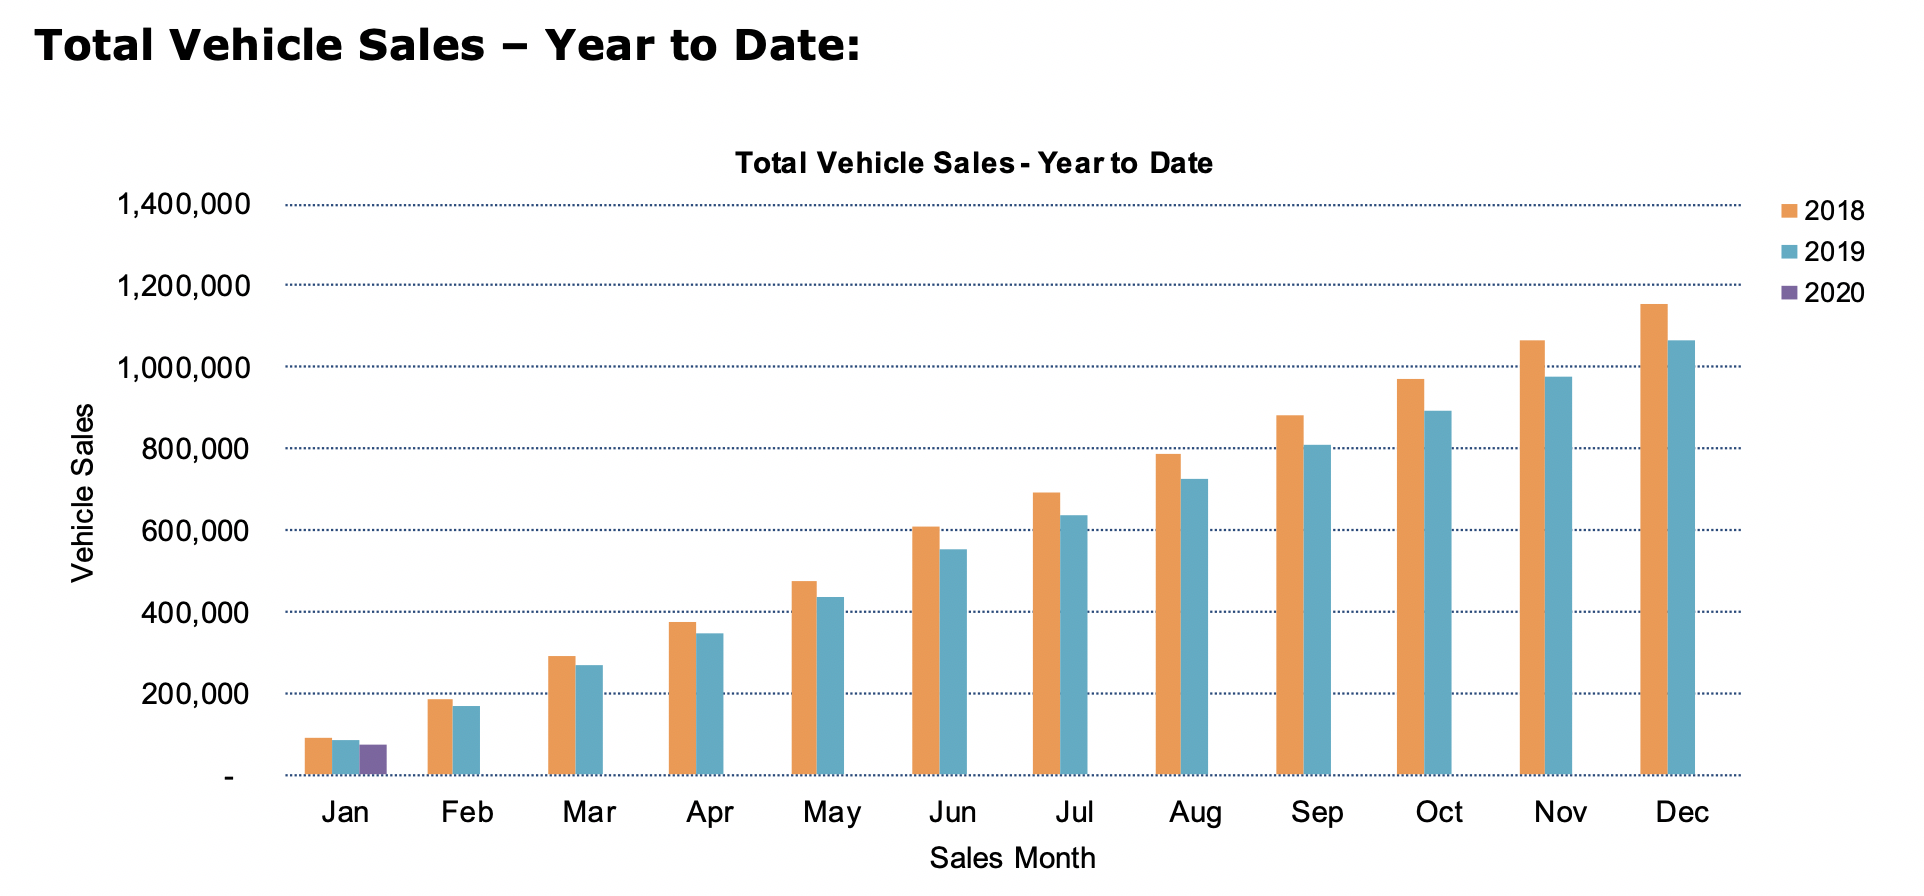 VFACTS JAN 2020 - SALES BY YEAR/MONTH COMPARISON